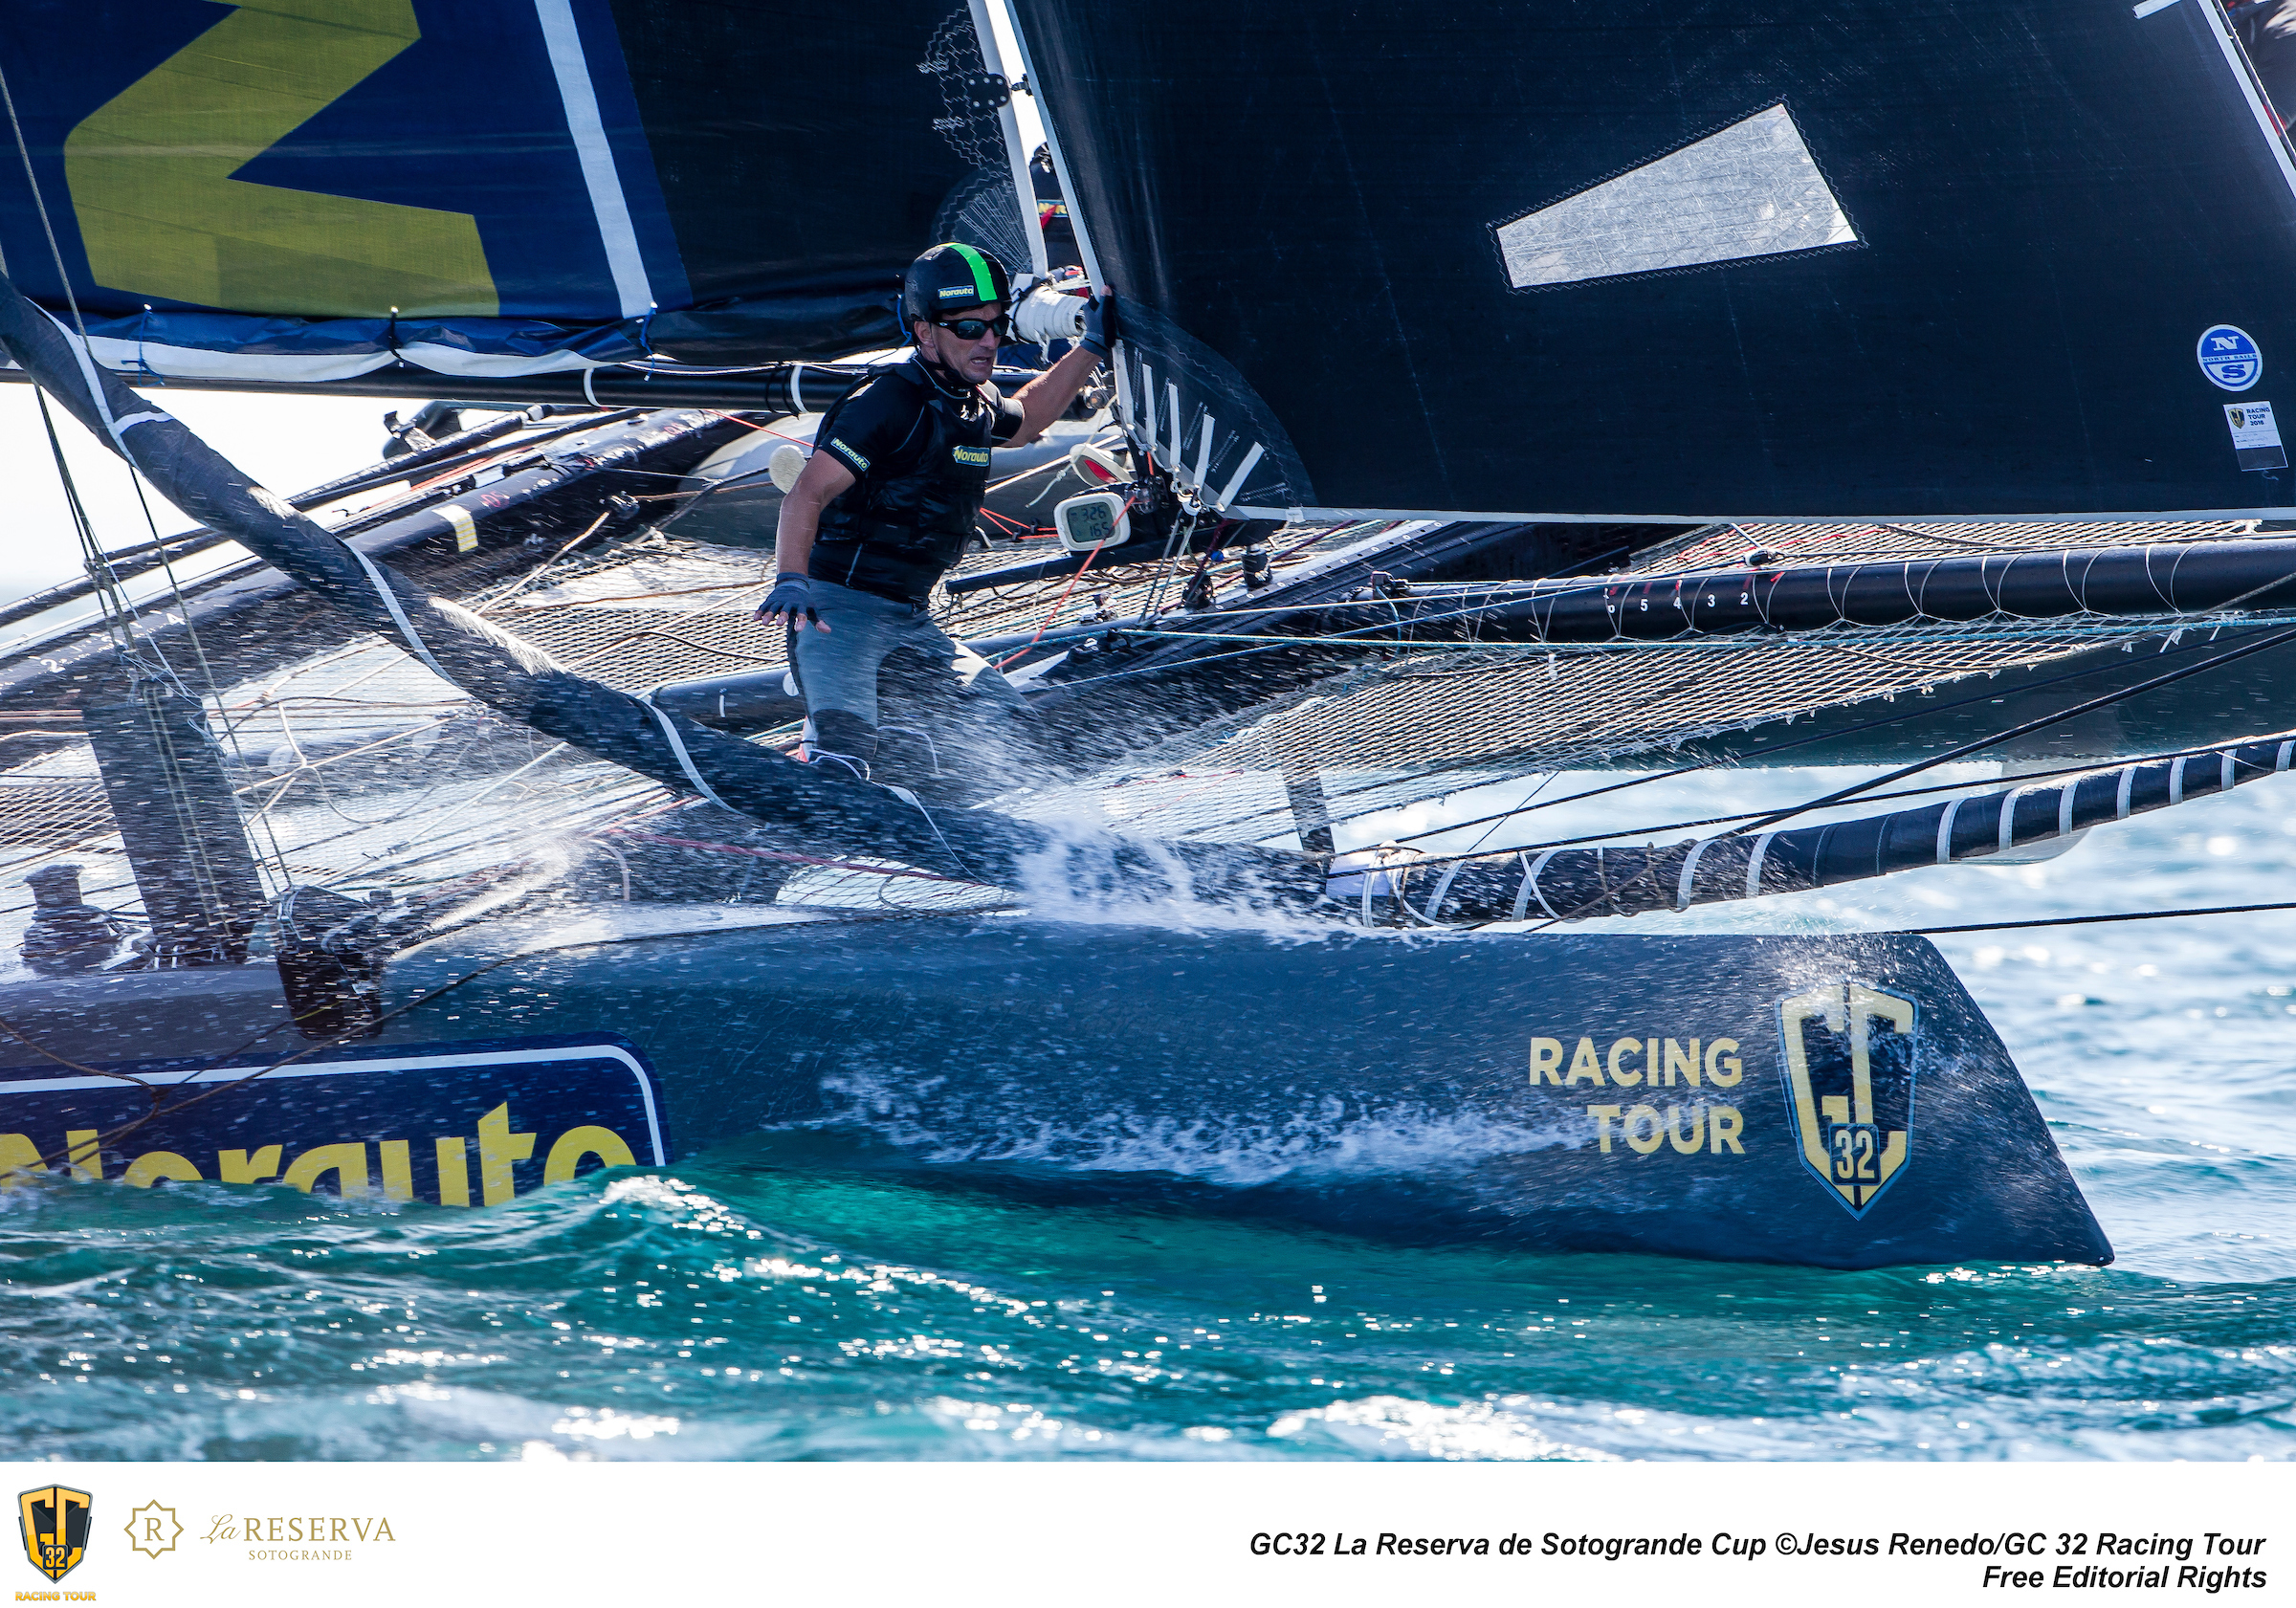 Working hard for the win on NORAUTO. Photo ©: Jesus Renedo / GC32 Racing Tour.